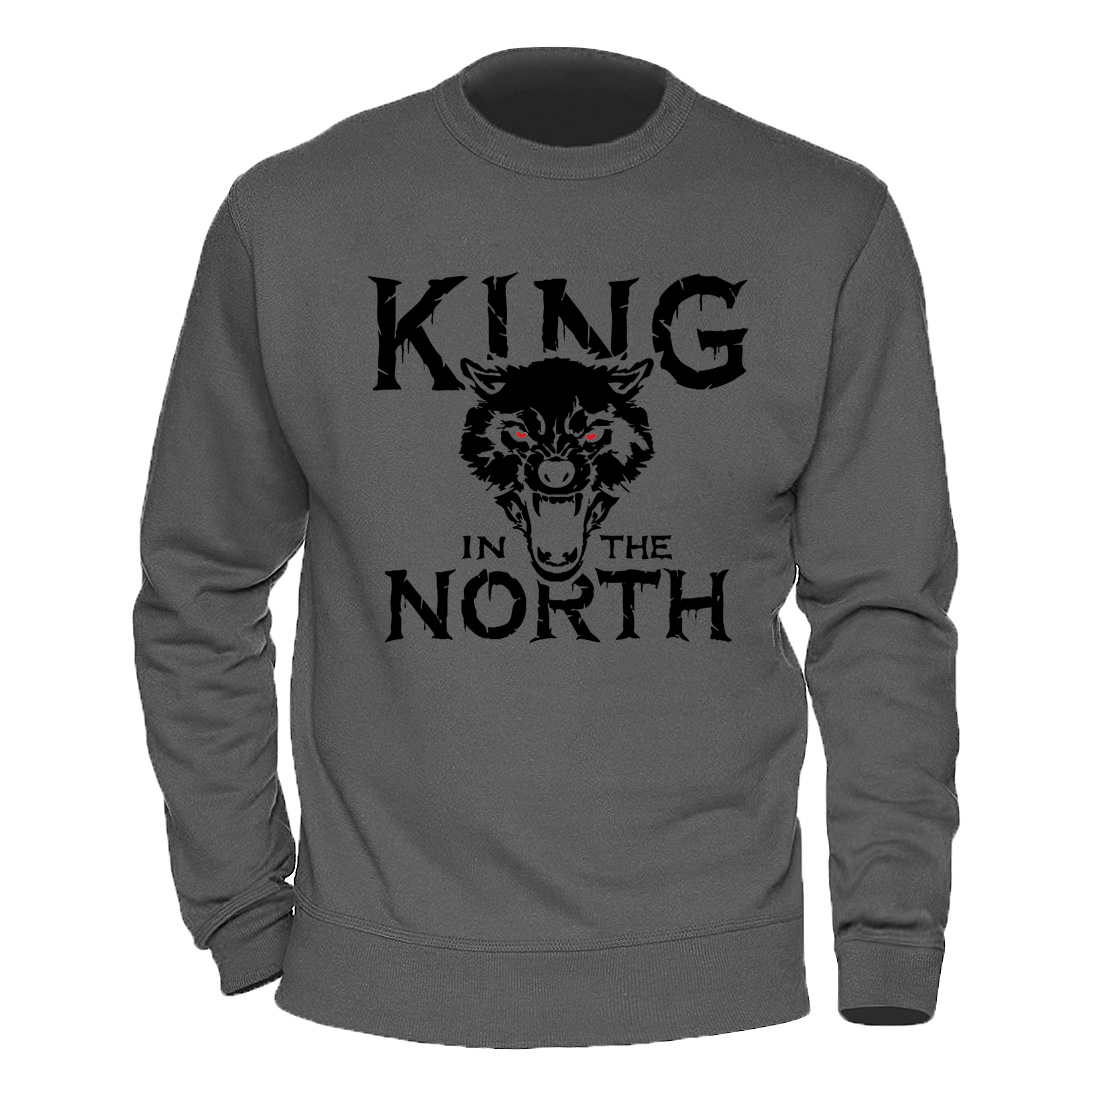 Homme Tracksuits King In The North Man Sweatshirts 2020 Mens Keep Warm Winter Autumn Hoodies Streetwear Long Sleeve Hoody Male